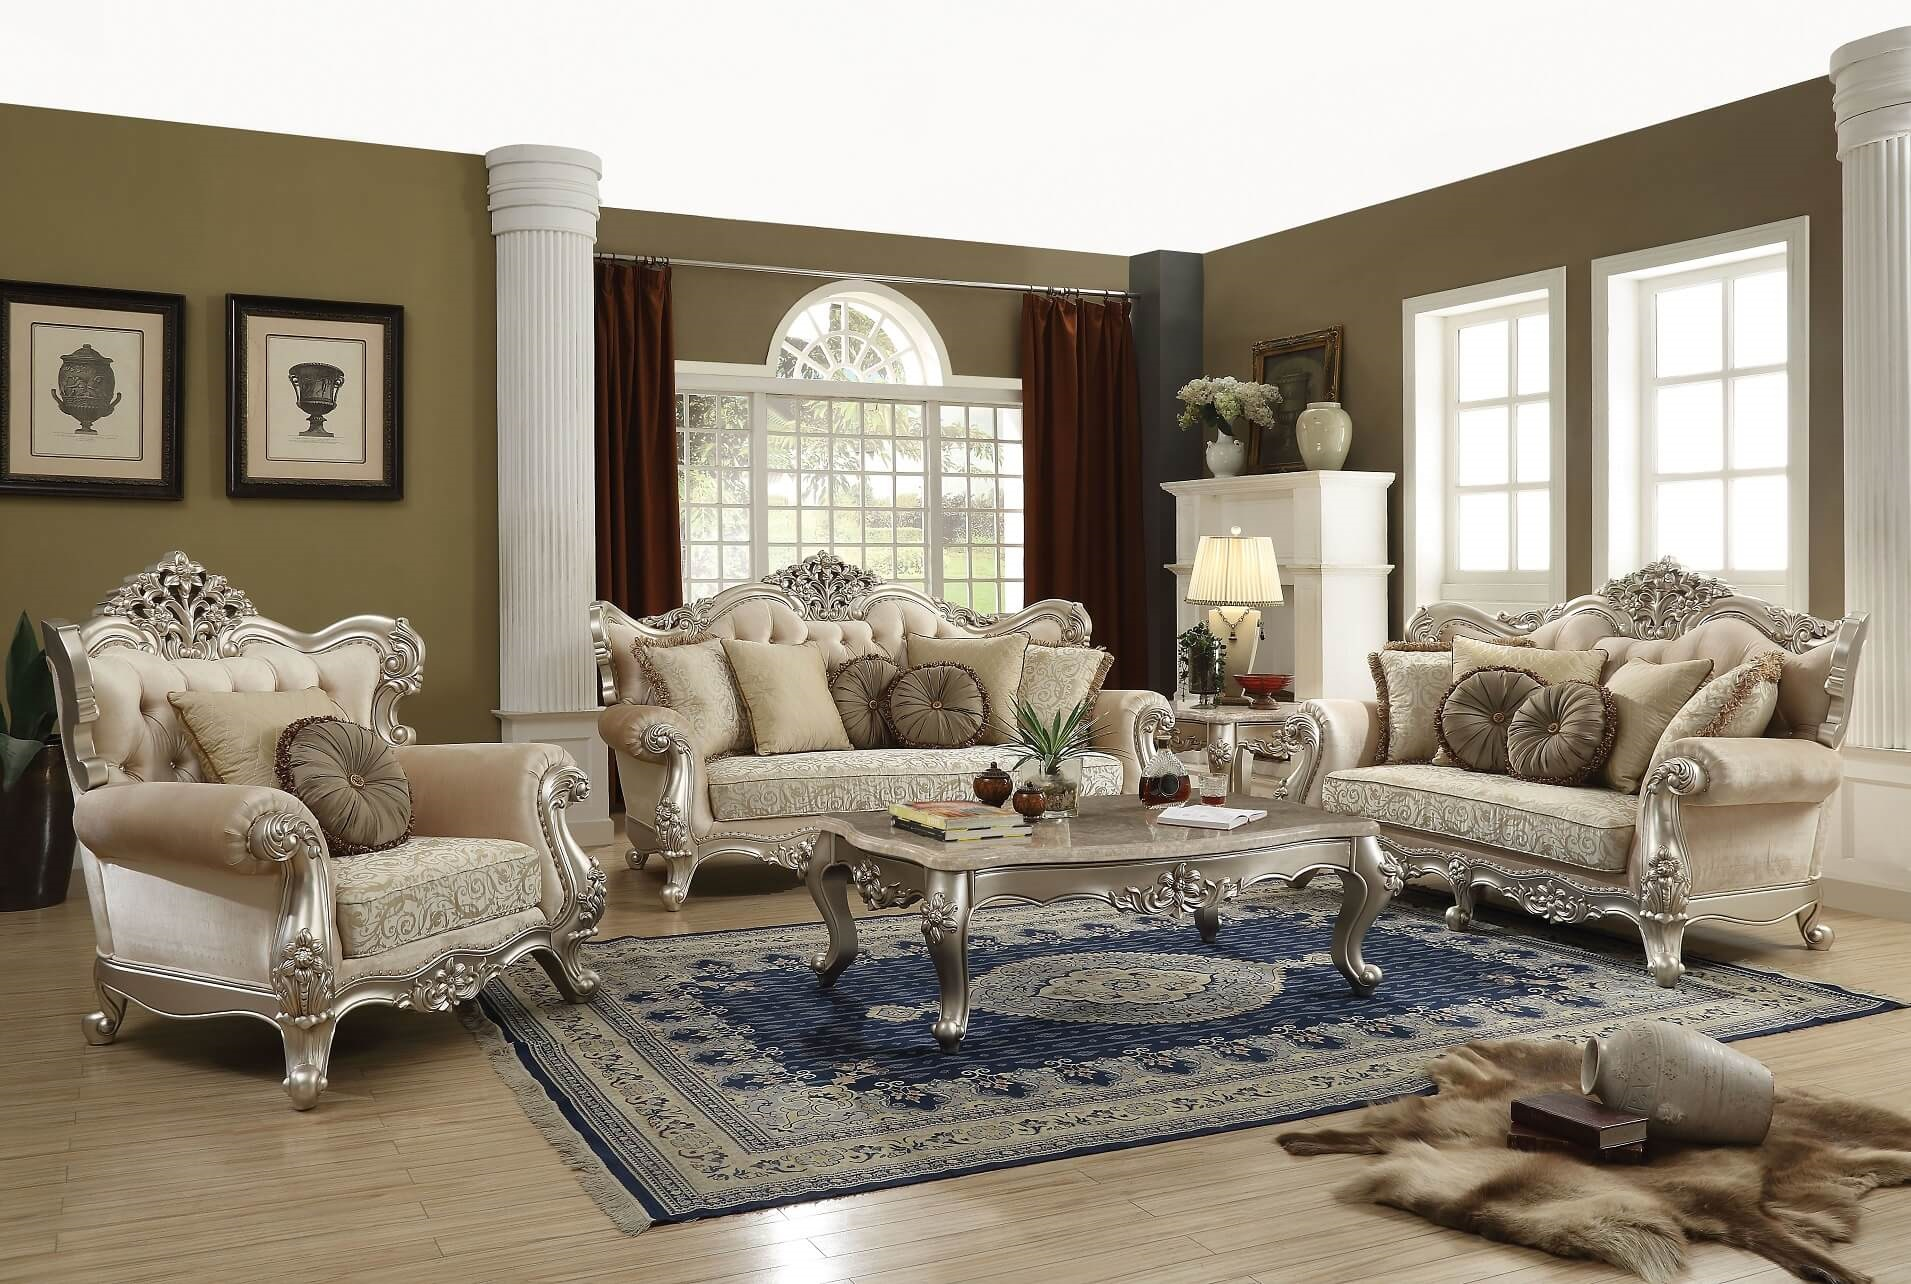 Acme Bently Traditional Living Room Set - USA Furniture Online